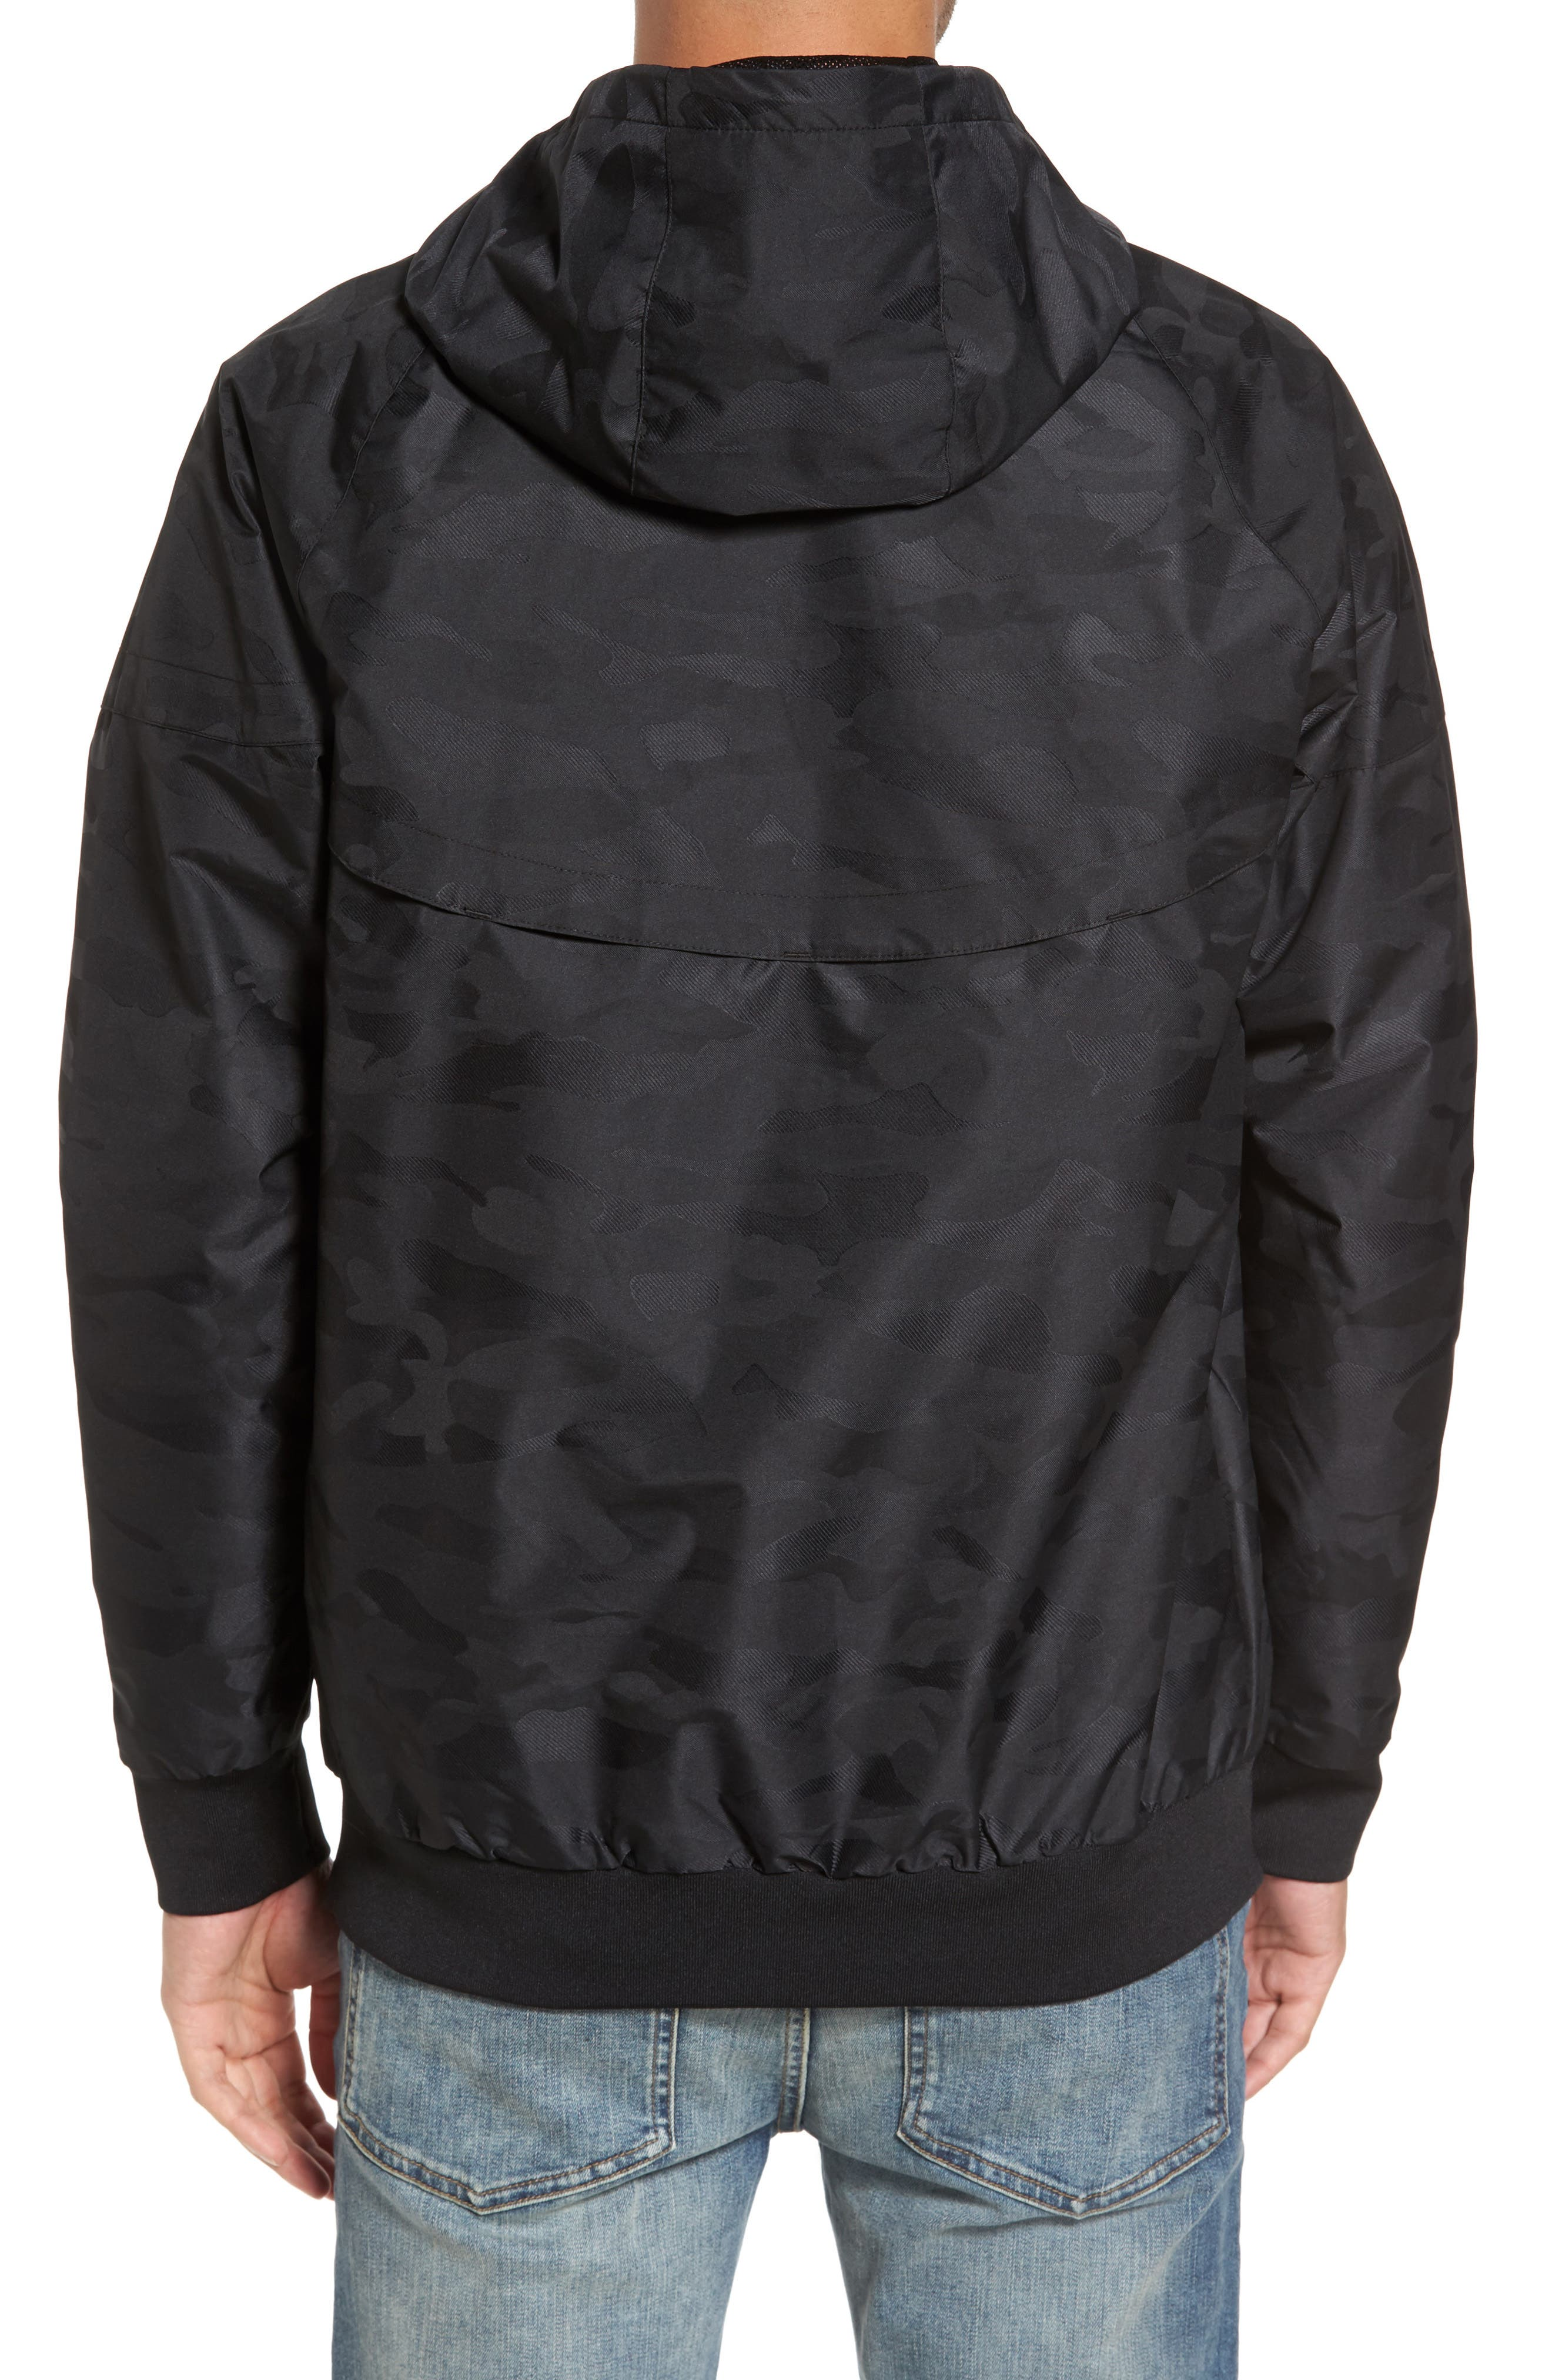 Larter Breaker Jacket,                             Alternate thumbnail 2, color,                             Black Camo